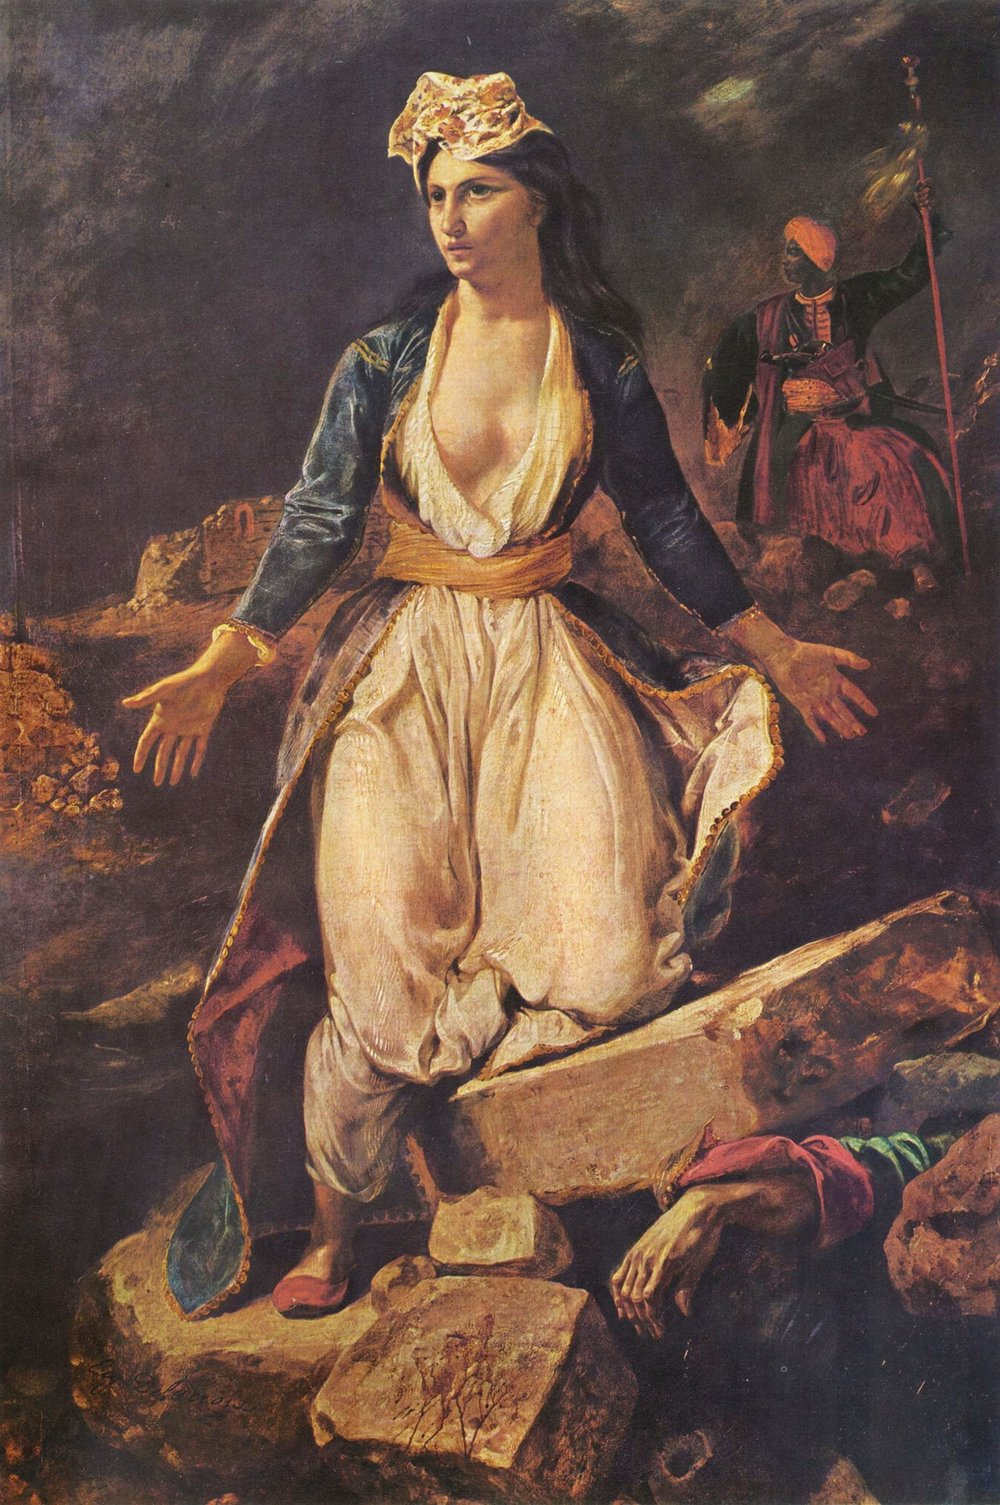 Greece on the Ruins of Missolonghi (1826)